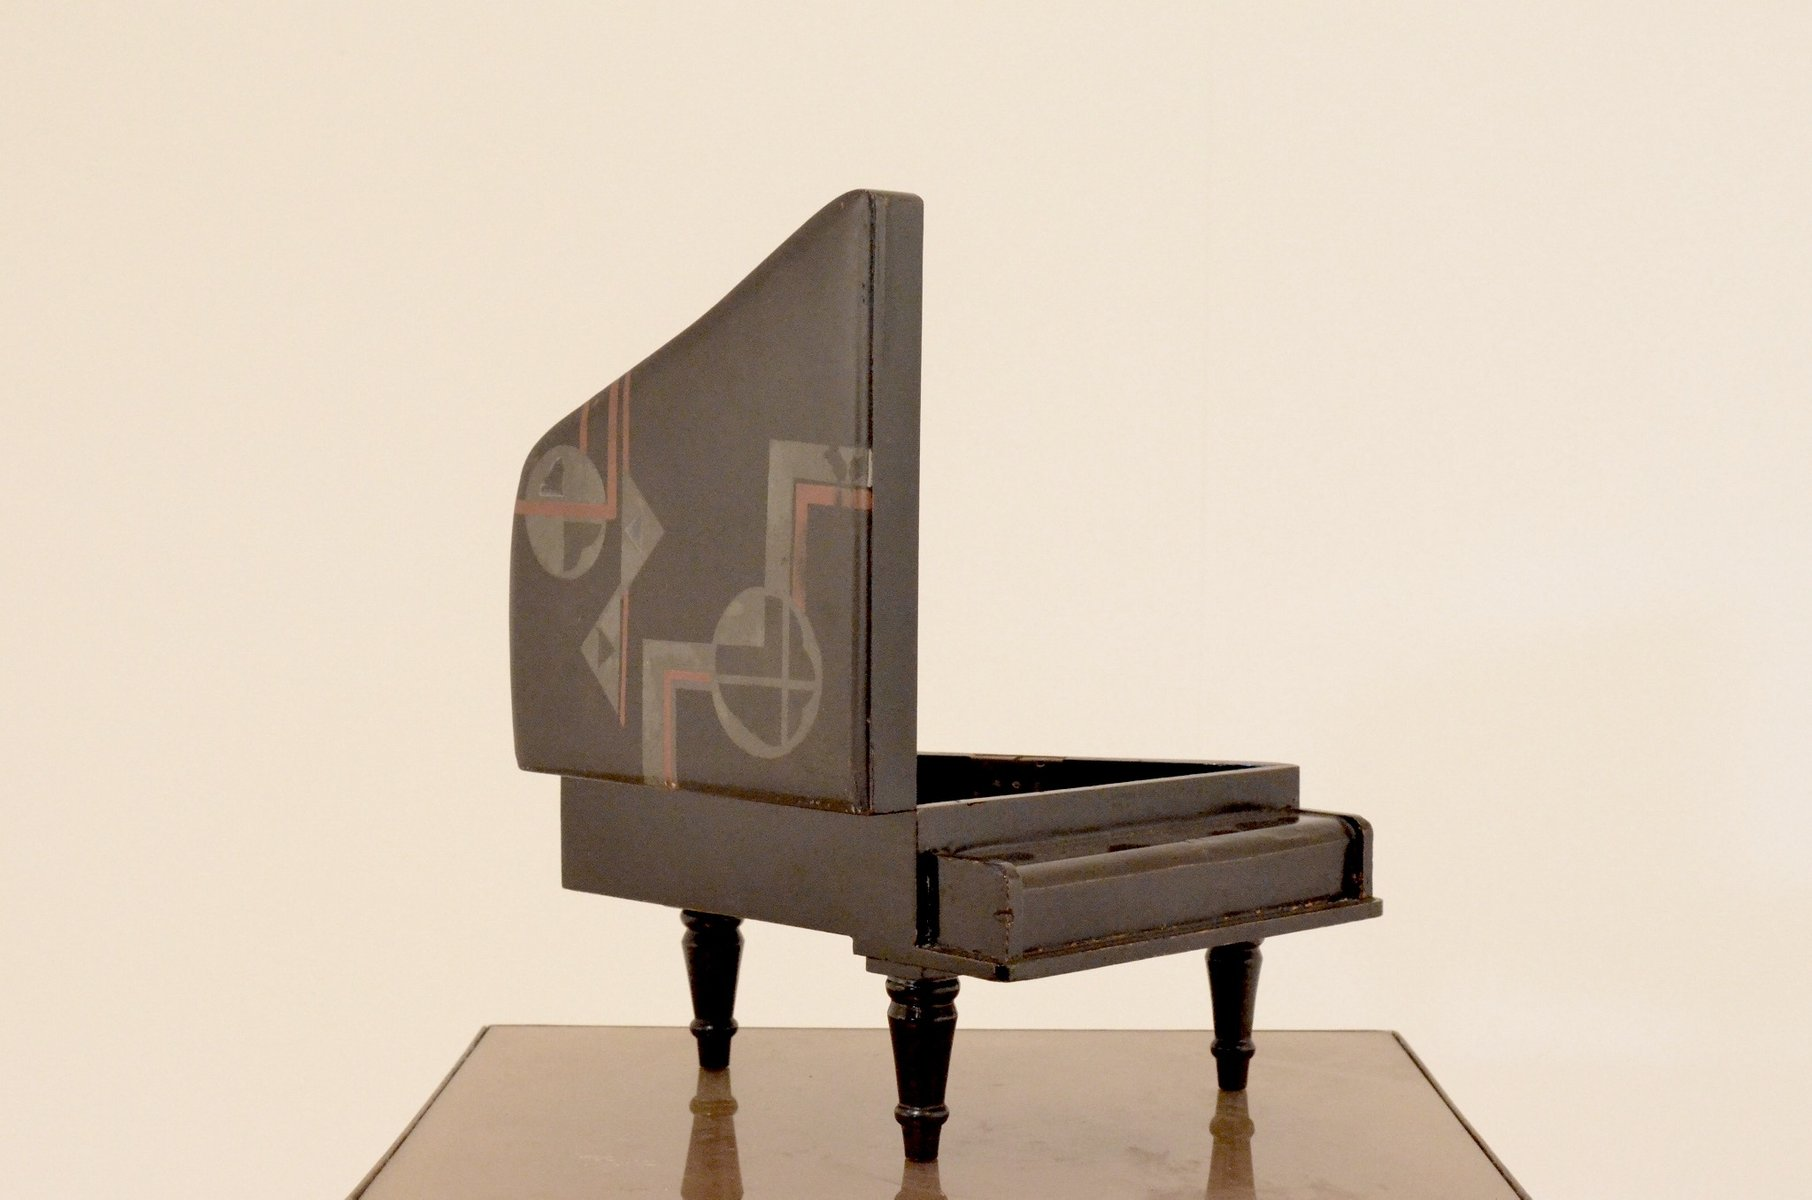 Art Deco Black Lacquered Wooden Piano Shaped Jewelry Box 1920s for